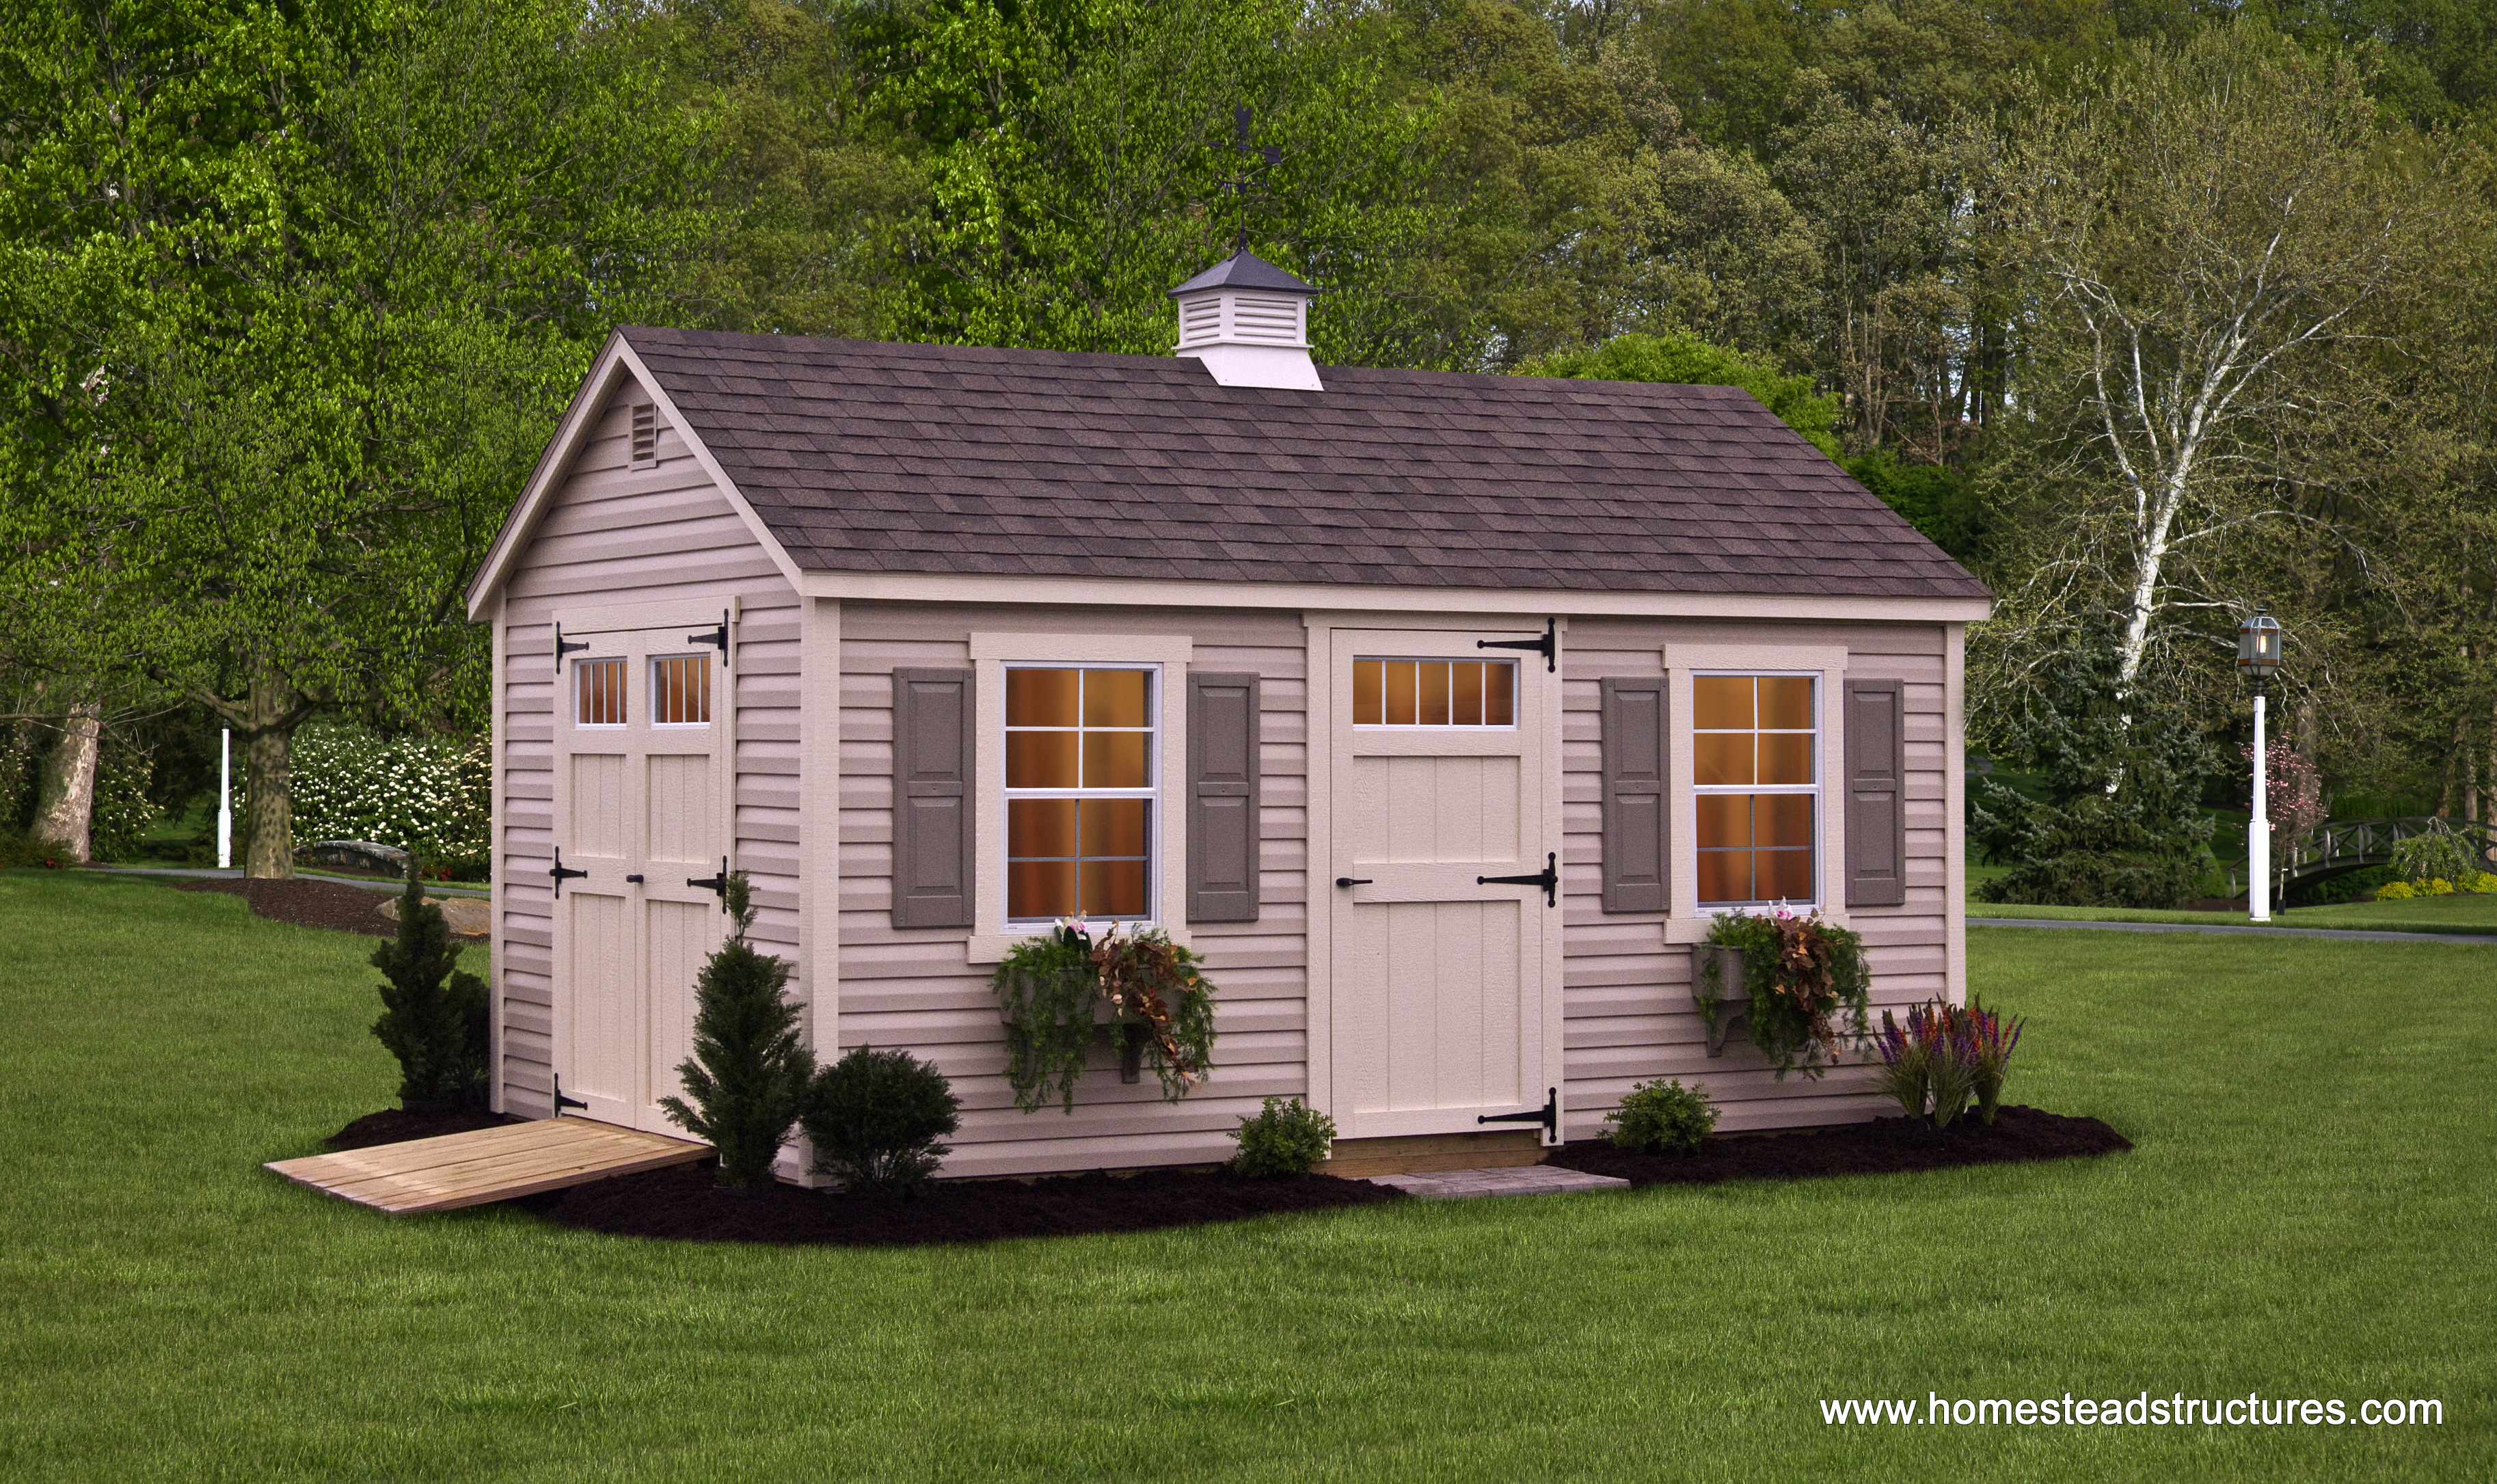 Custom Storage Sheds For Sale In Pa Garden Sheds Amish Sheds